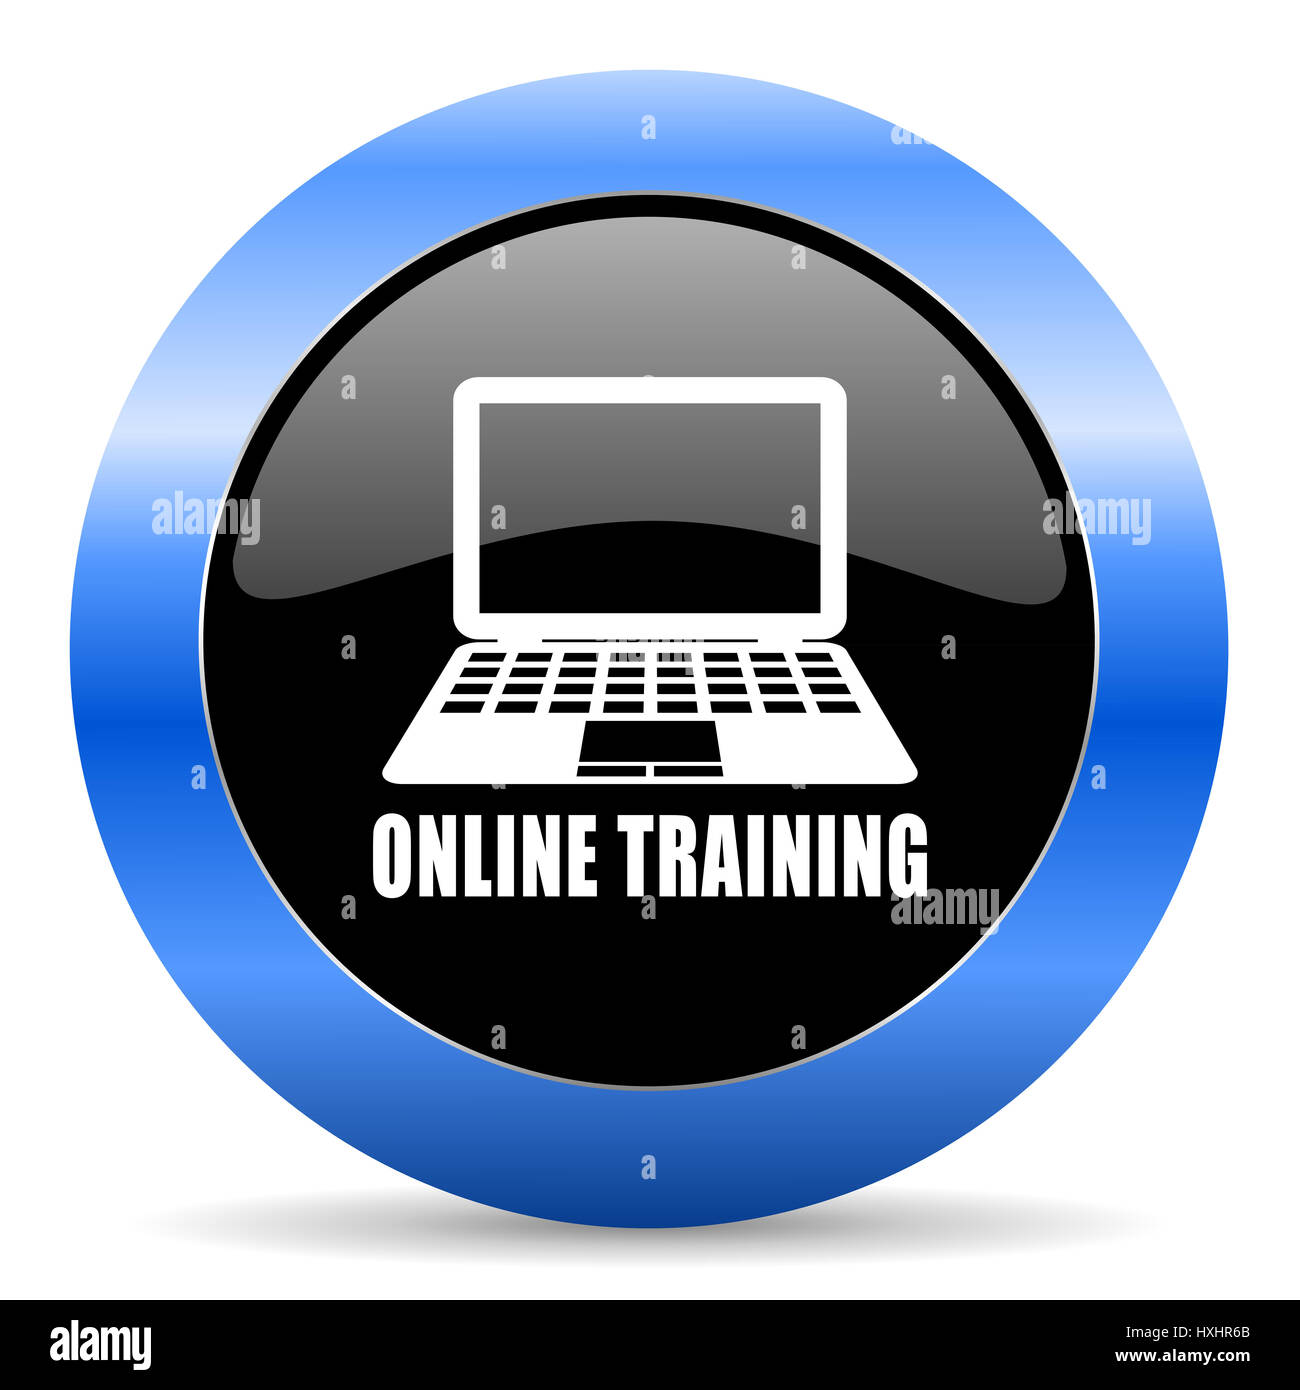 Online training black and blue web design round internet icon with shadow on white background